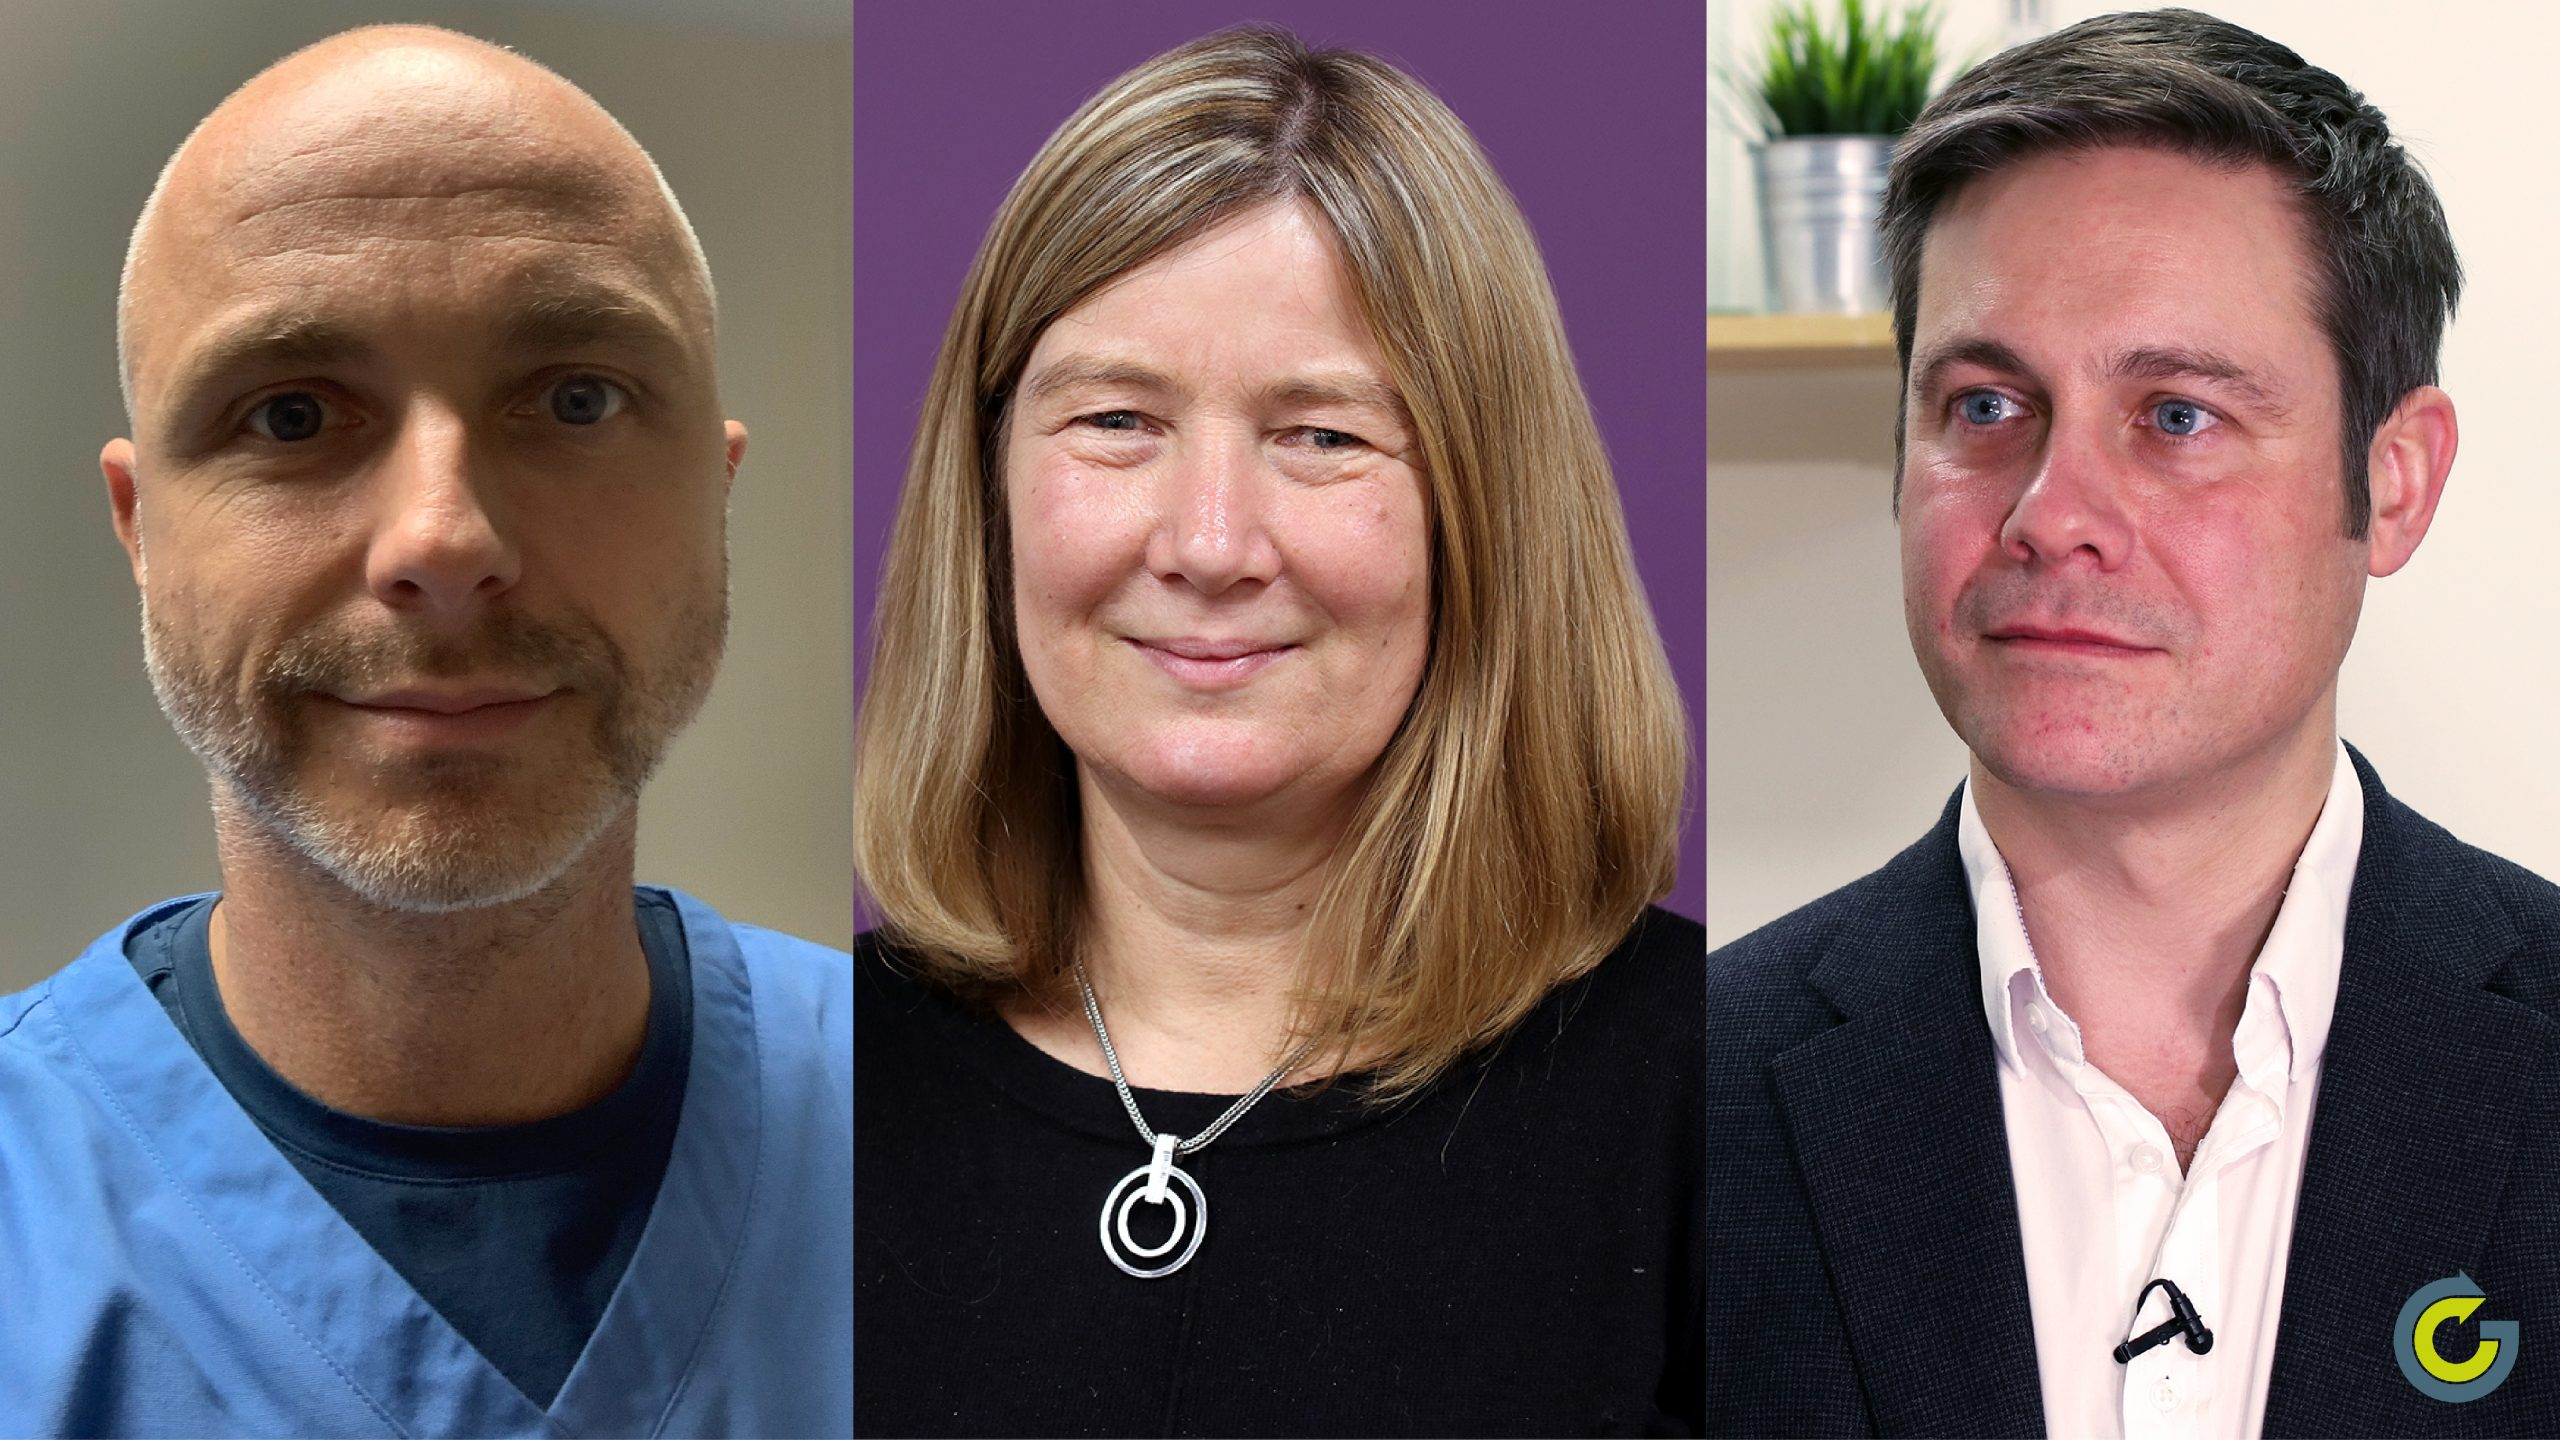 Dr Anthony Cunliffe, Joint National Lead Macmillan GP Adviser, Dr Sarah Taylor, GatewayC GP and Dr Ben Noble, East Midlands Cancer Alliance and Cancer Research UK GP Cancer Lead